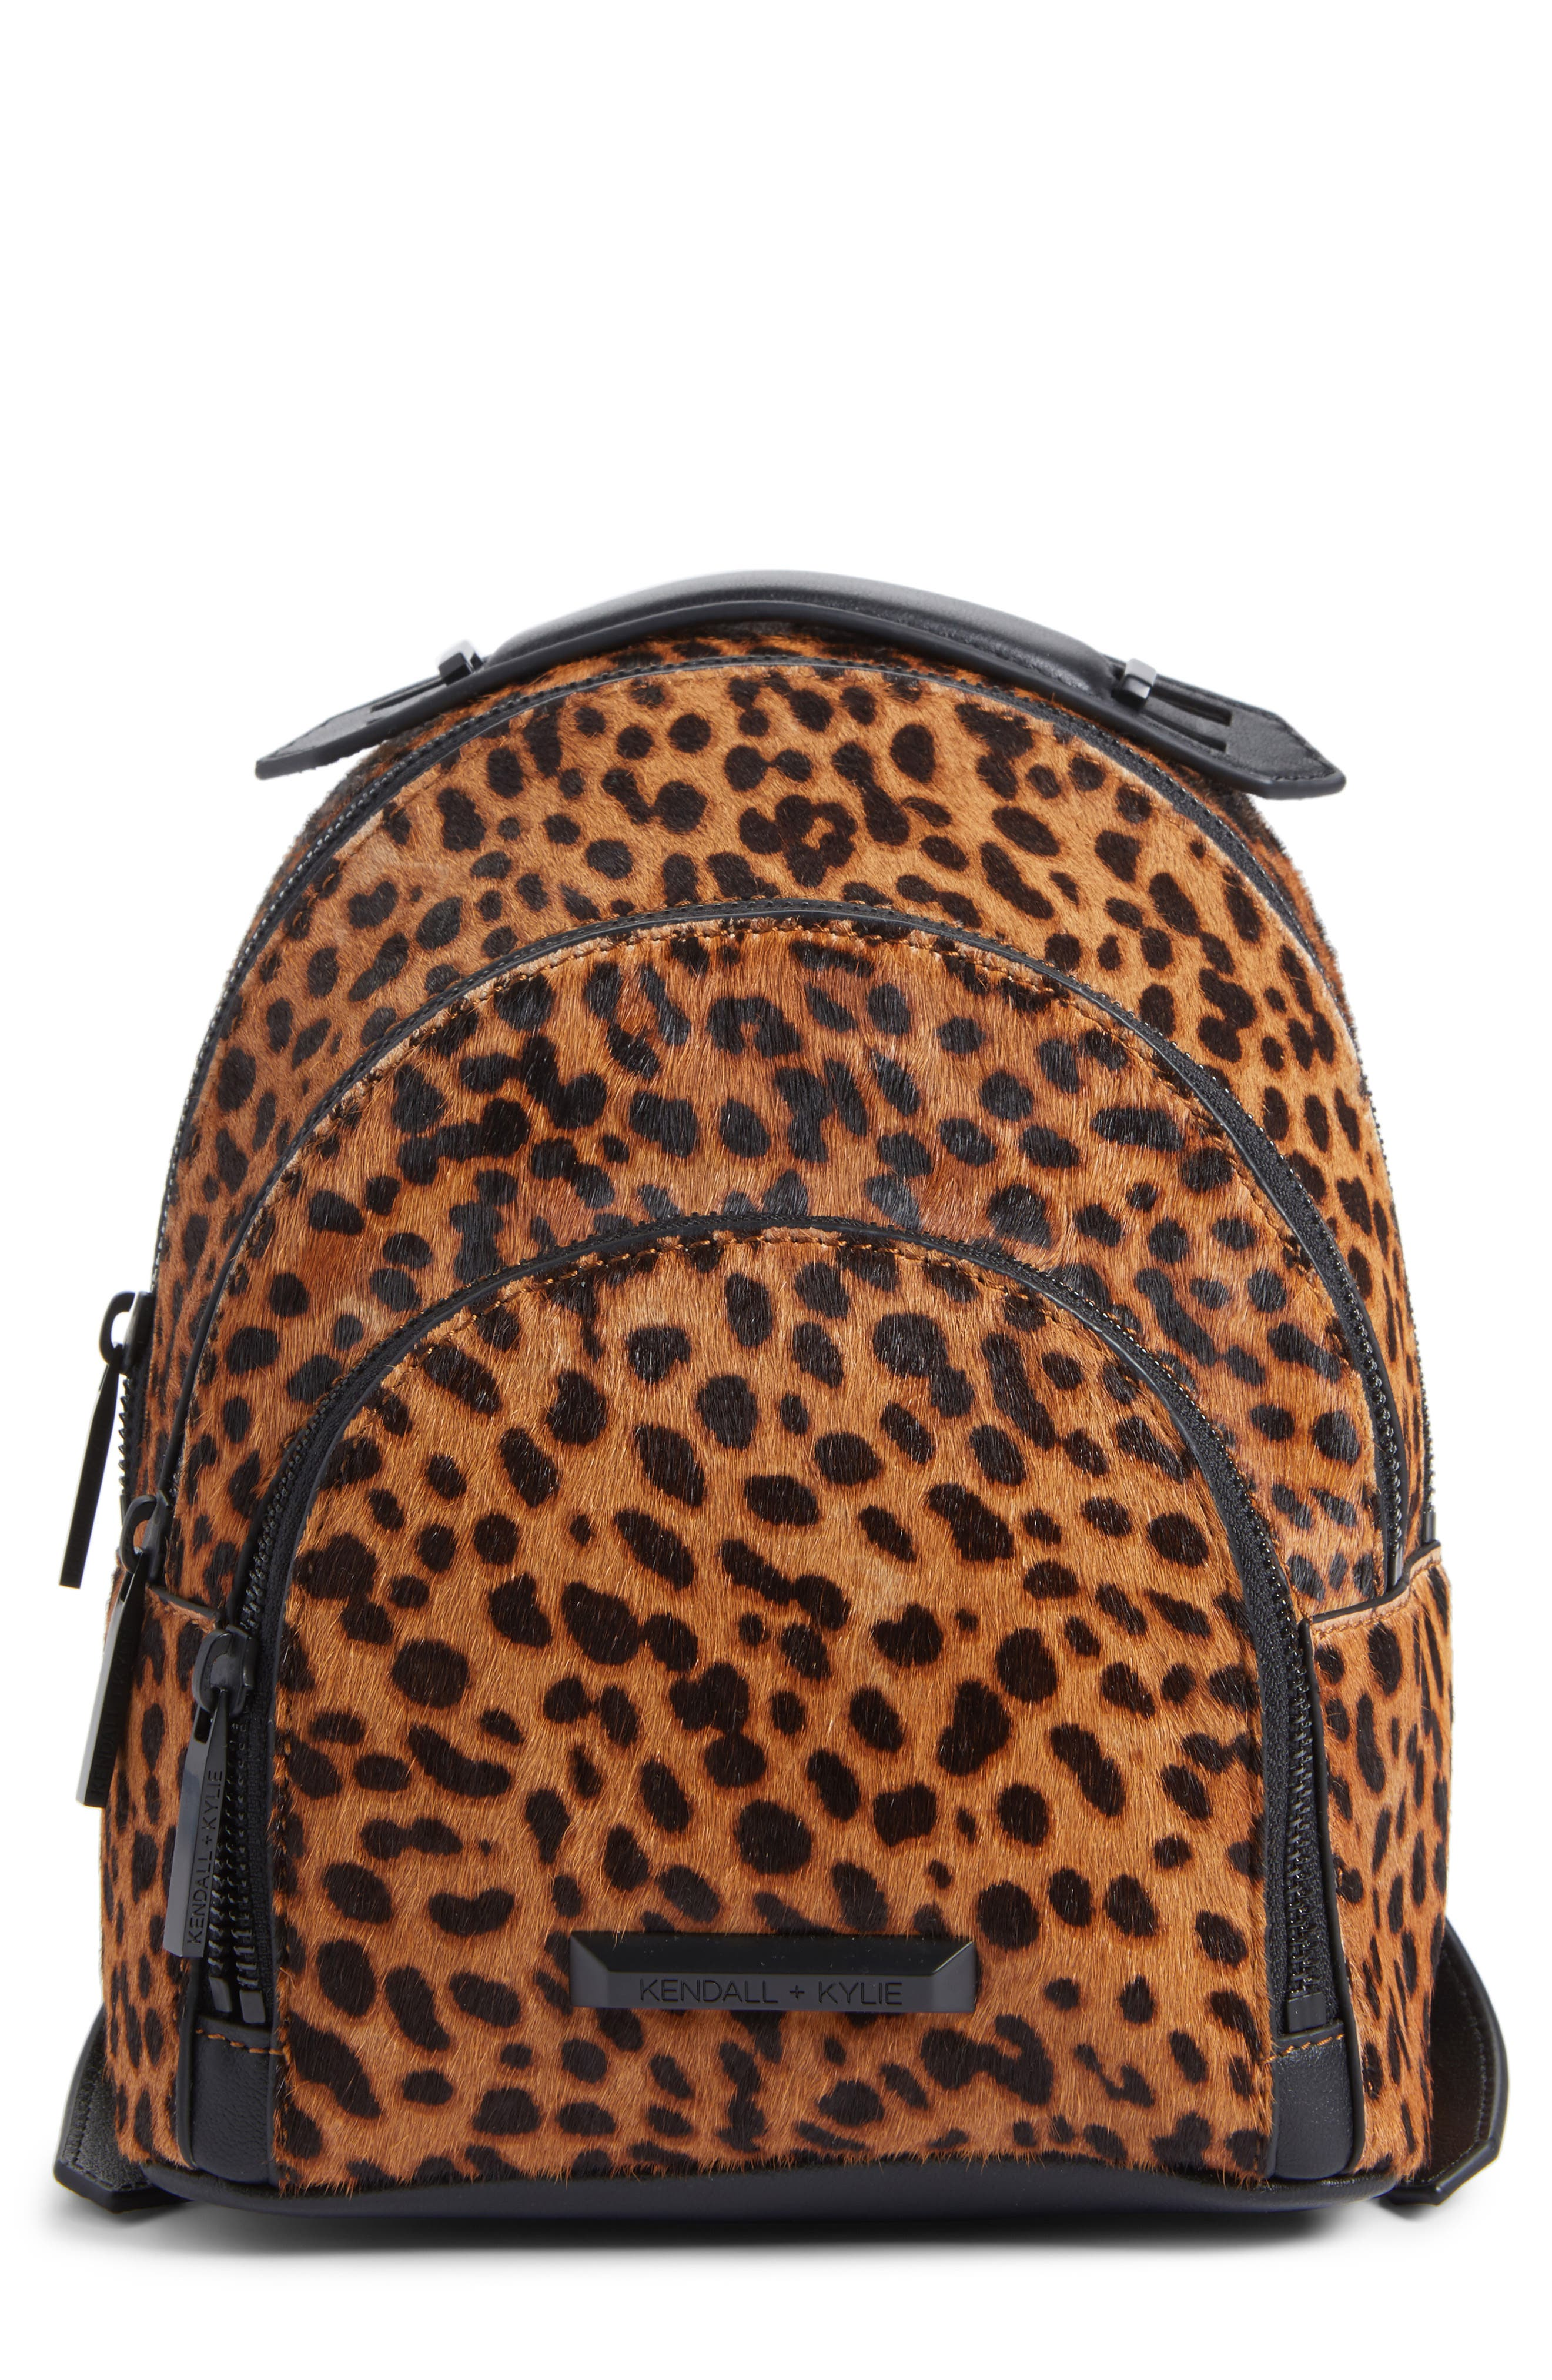 Alternate Image 1 Selected - KENDALL + KYLIE Mini Sloane Genuine Calf Hair & Leather Backpack